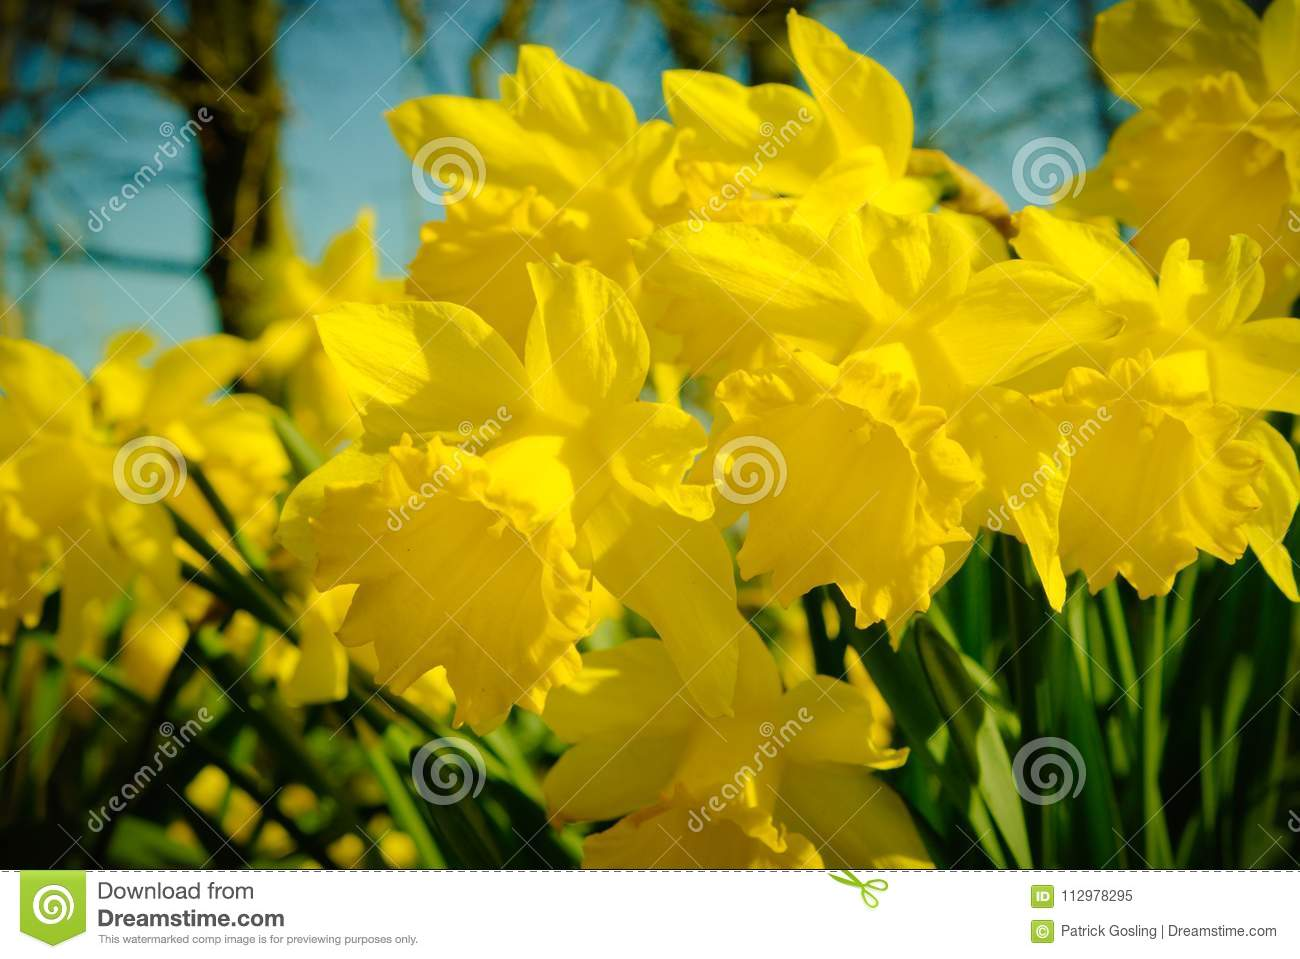 Narcissus or daffodils flowering in spring..